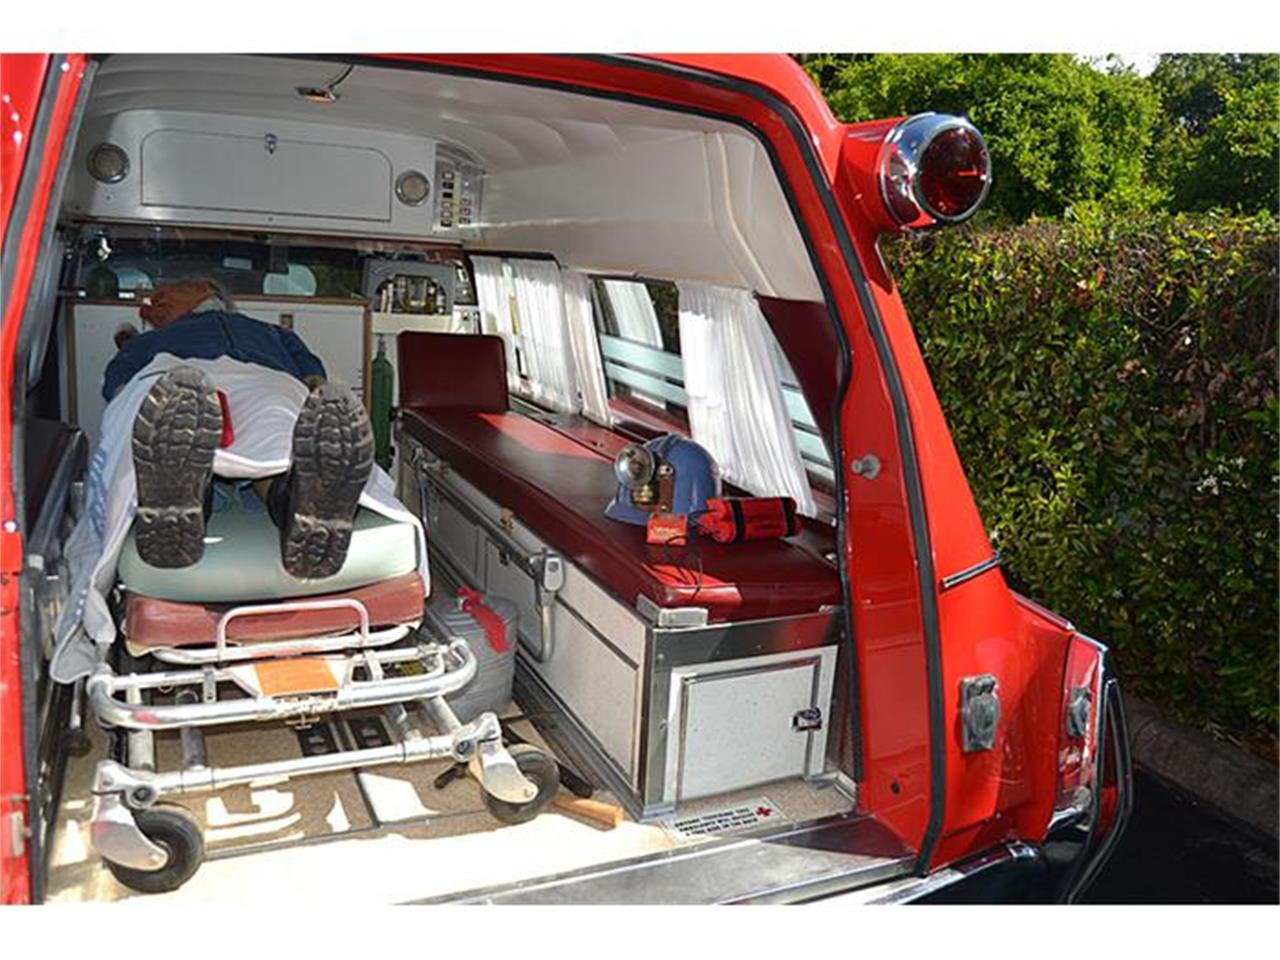 Large Picture of Classic 1972 S&S Kesington Professional Ambulance located in Mount Dora (Orlando) Florida Offered by Classic Dreamcars, Inc. - IWNH